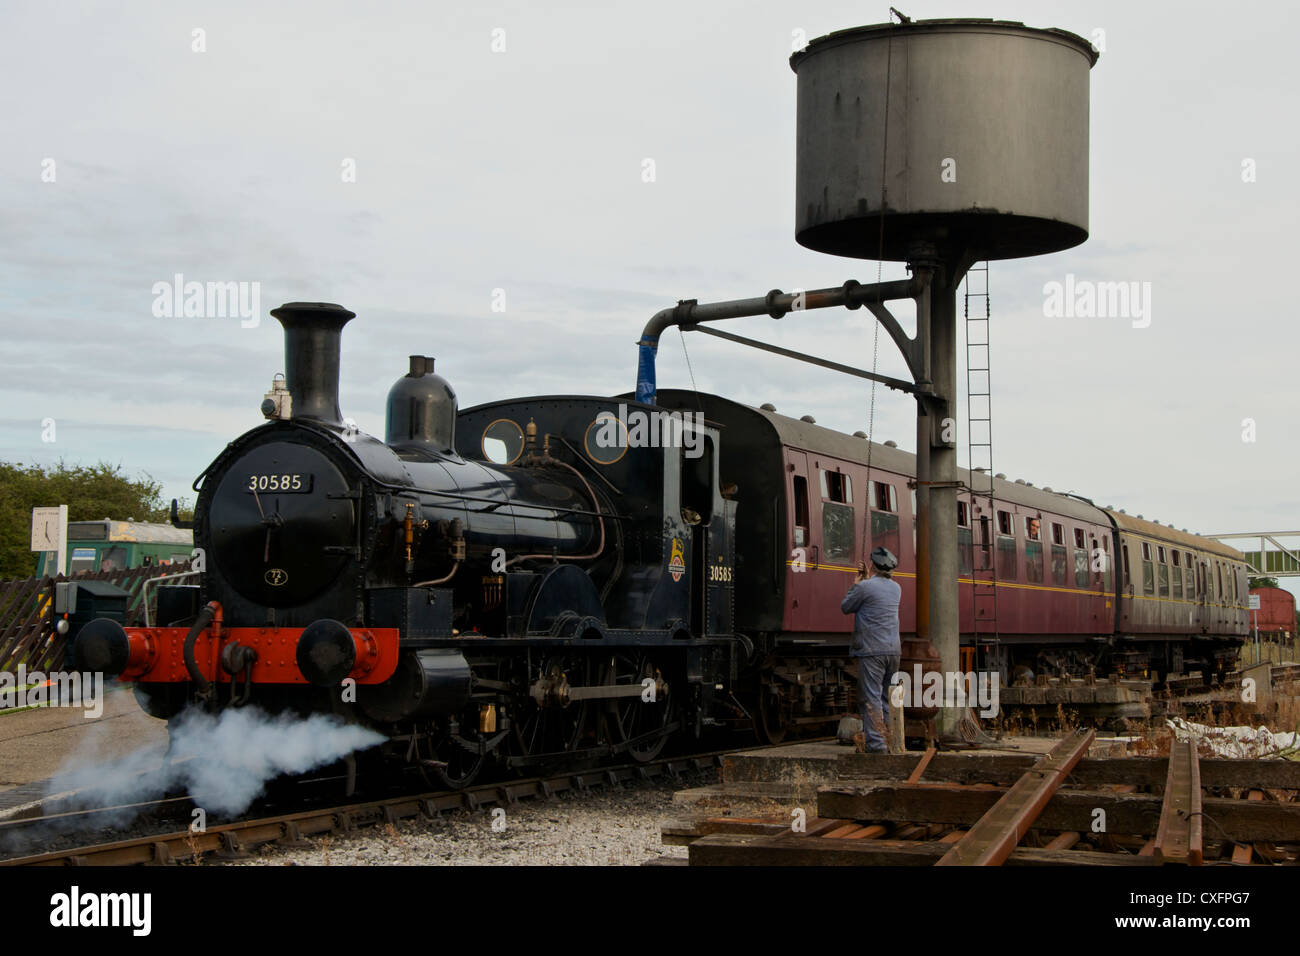 Steam Locomotive at Buckinghamshire Railway Centre, Quainton, taking on water before giving visitors a trip. - Stock Image